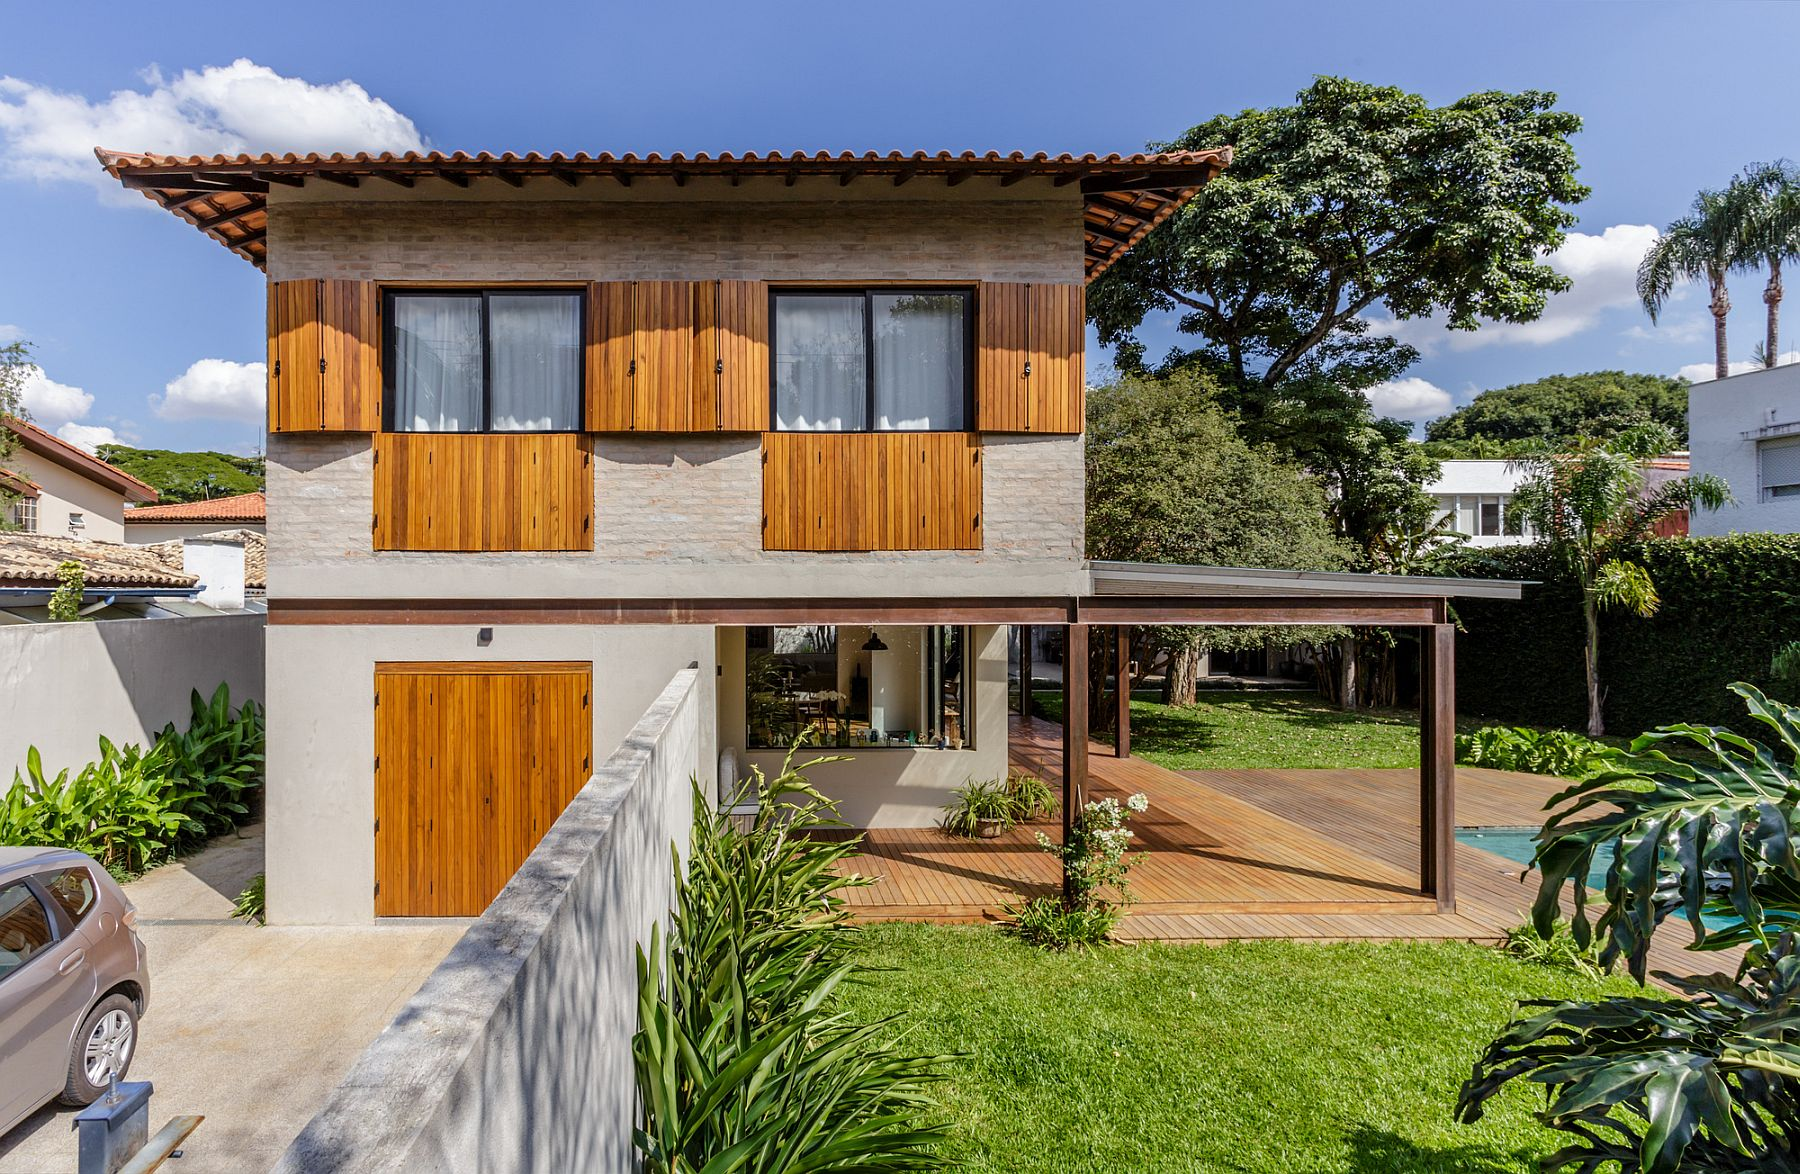 50s home in Sao Paulo upgraded to create a more social and modern living space